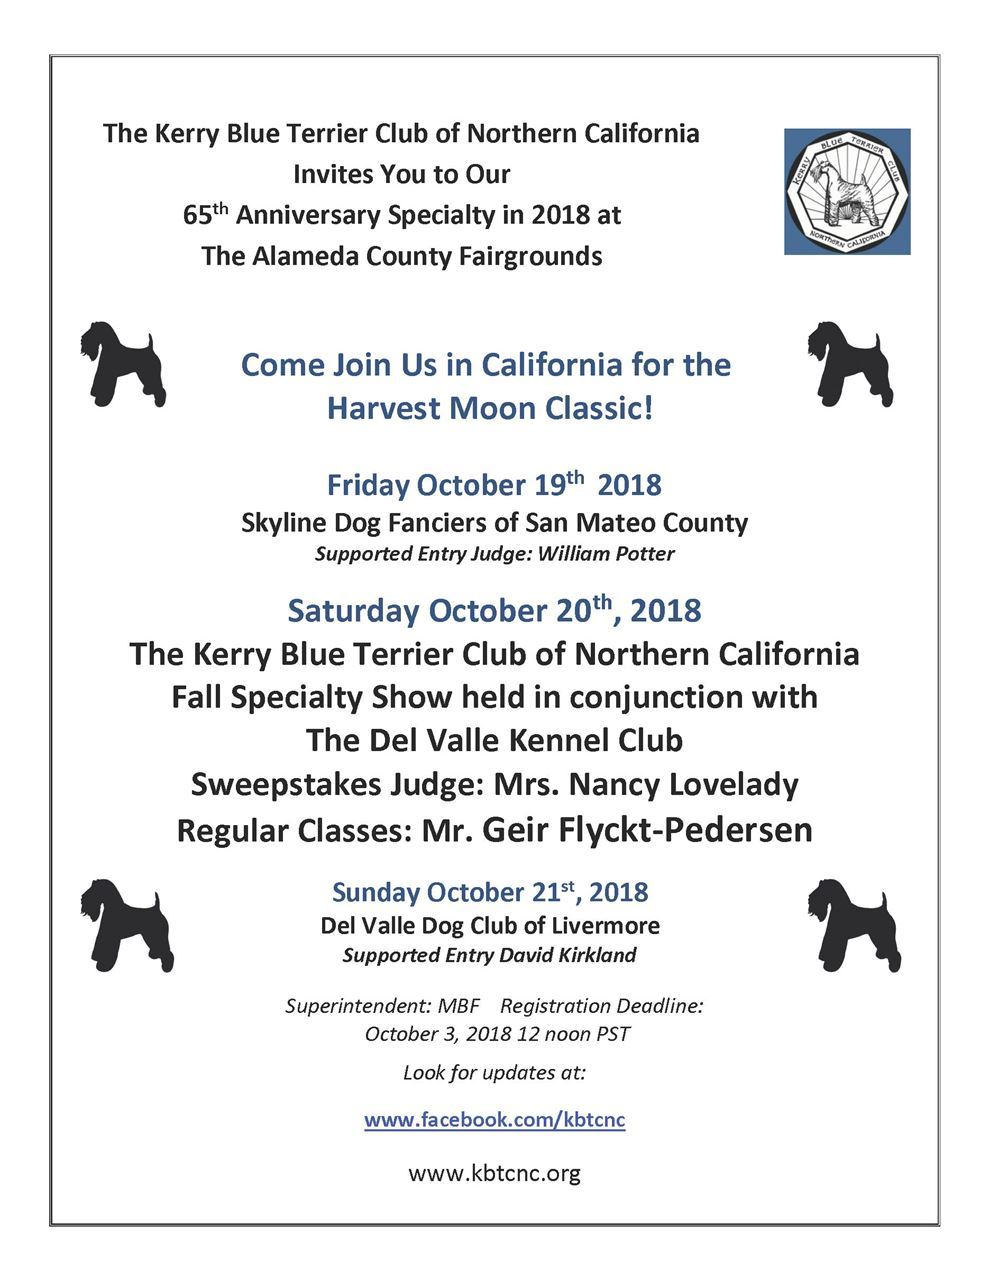 United States Kerry Blue Terrier Club, Inc  - 65th